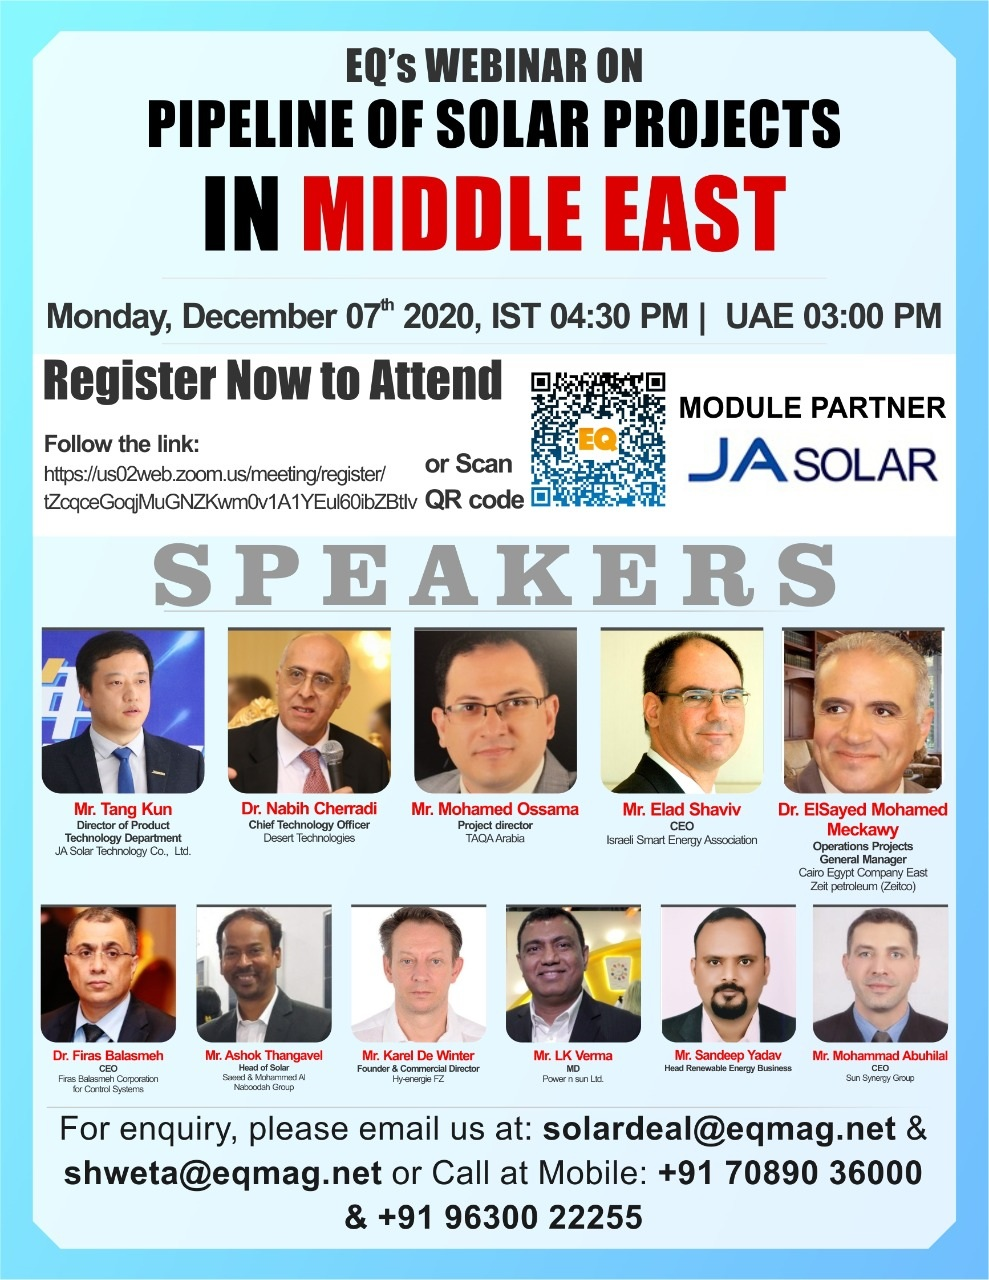 EQ Webinar on Pipeline of Solar Projects in Middle East